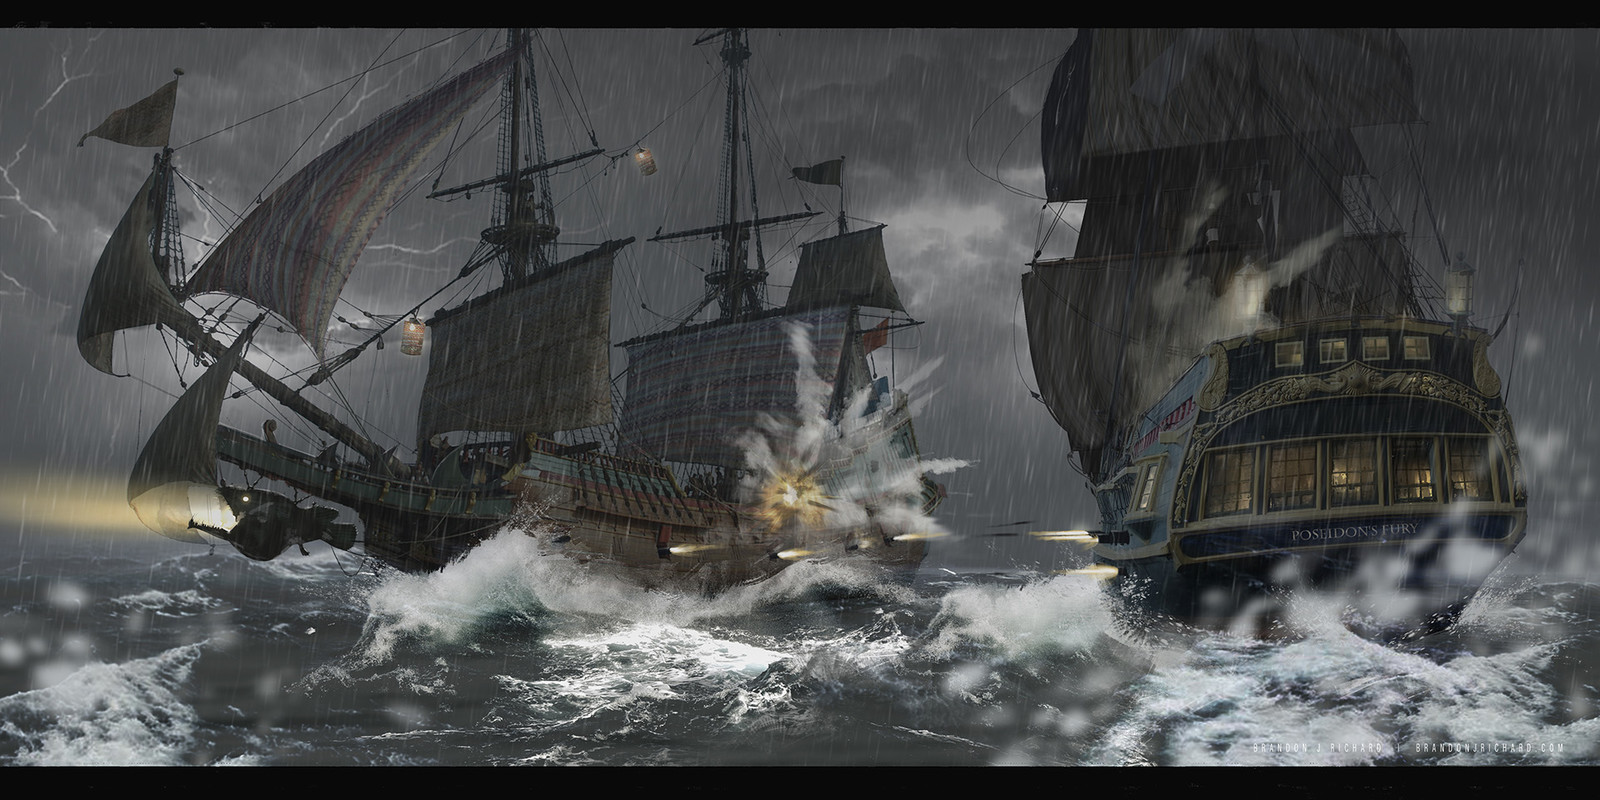 Pirate Ship Battle scene